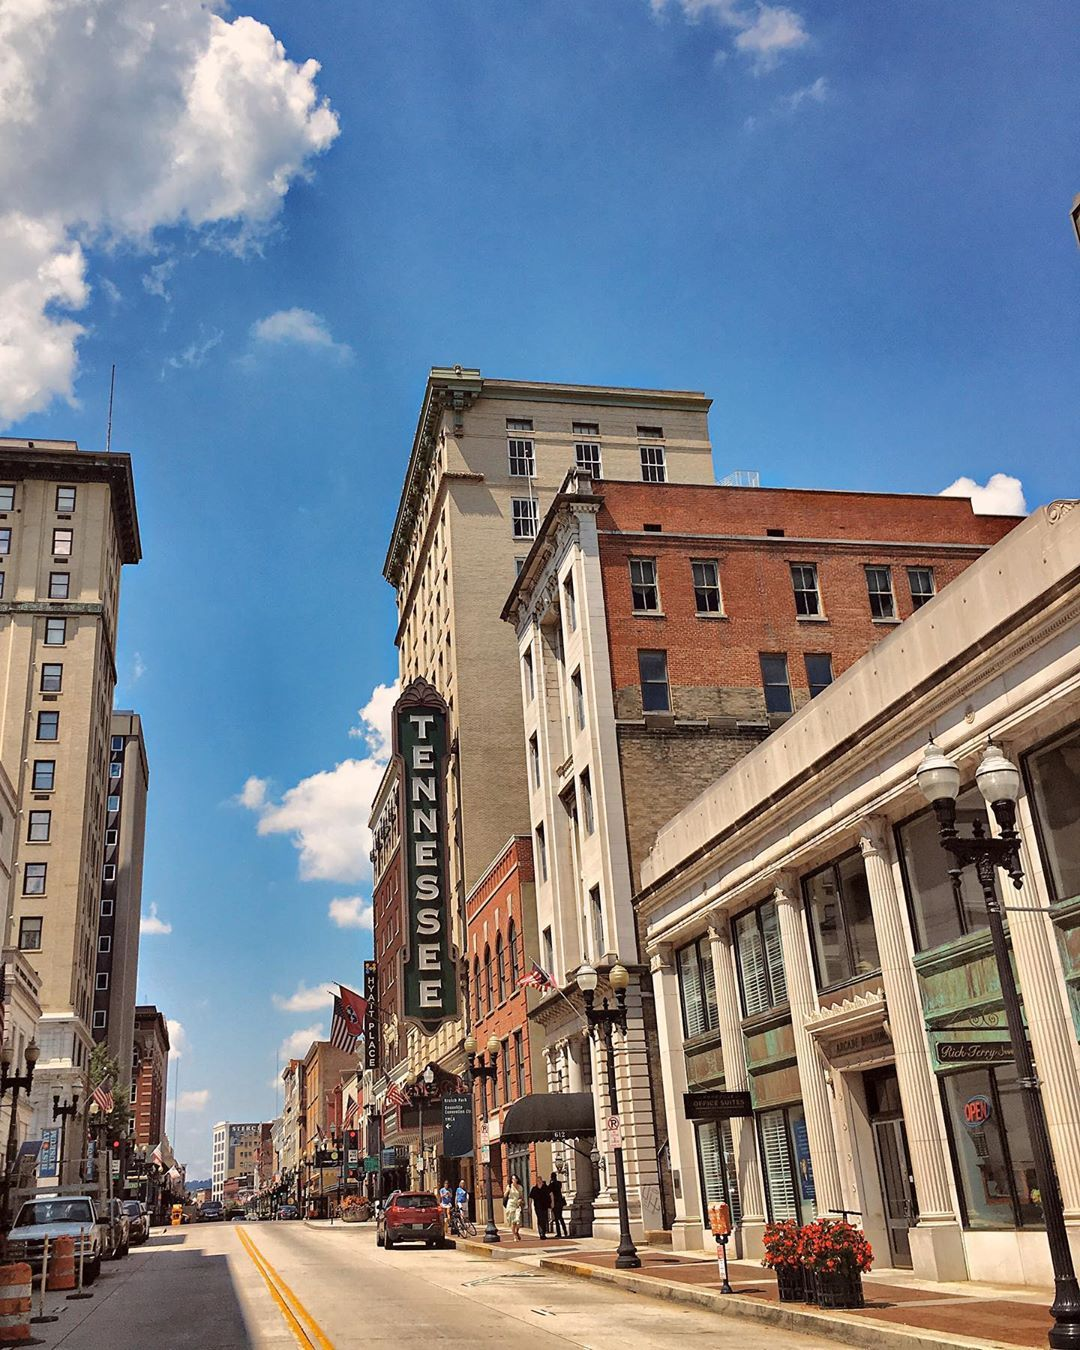 23 Reasons Knoxville, Tennessee Should Be On Your Bucket List